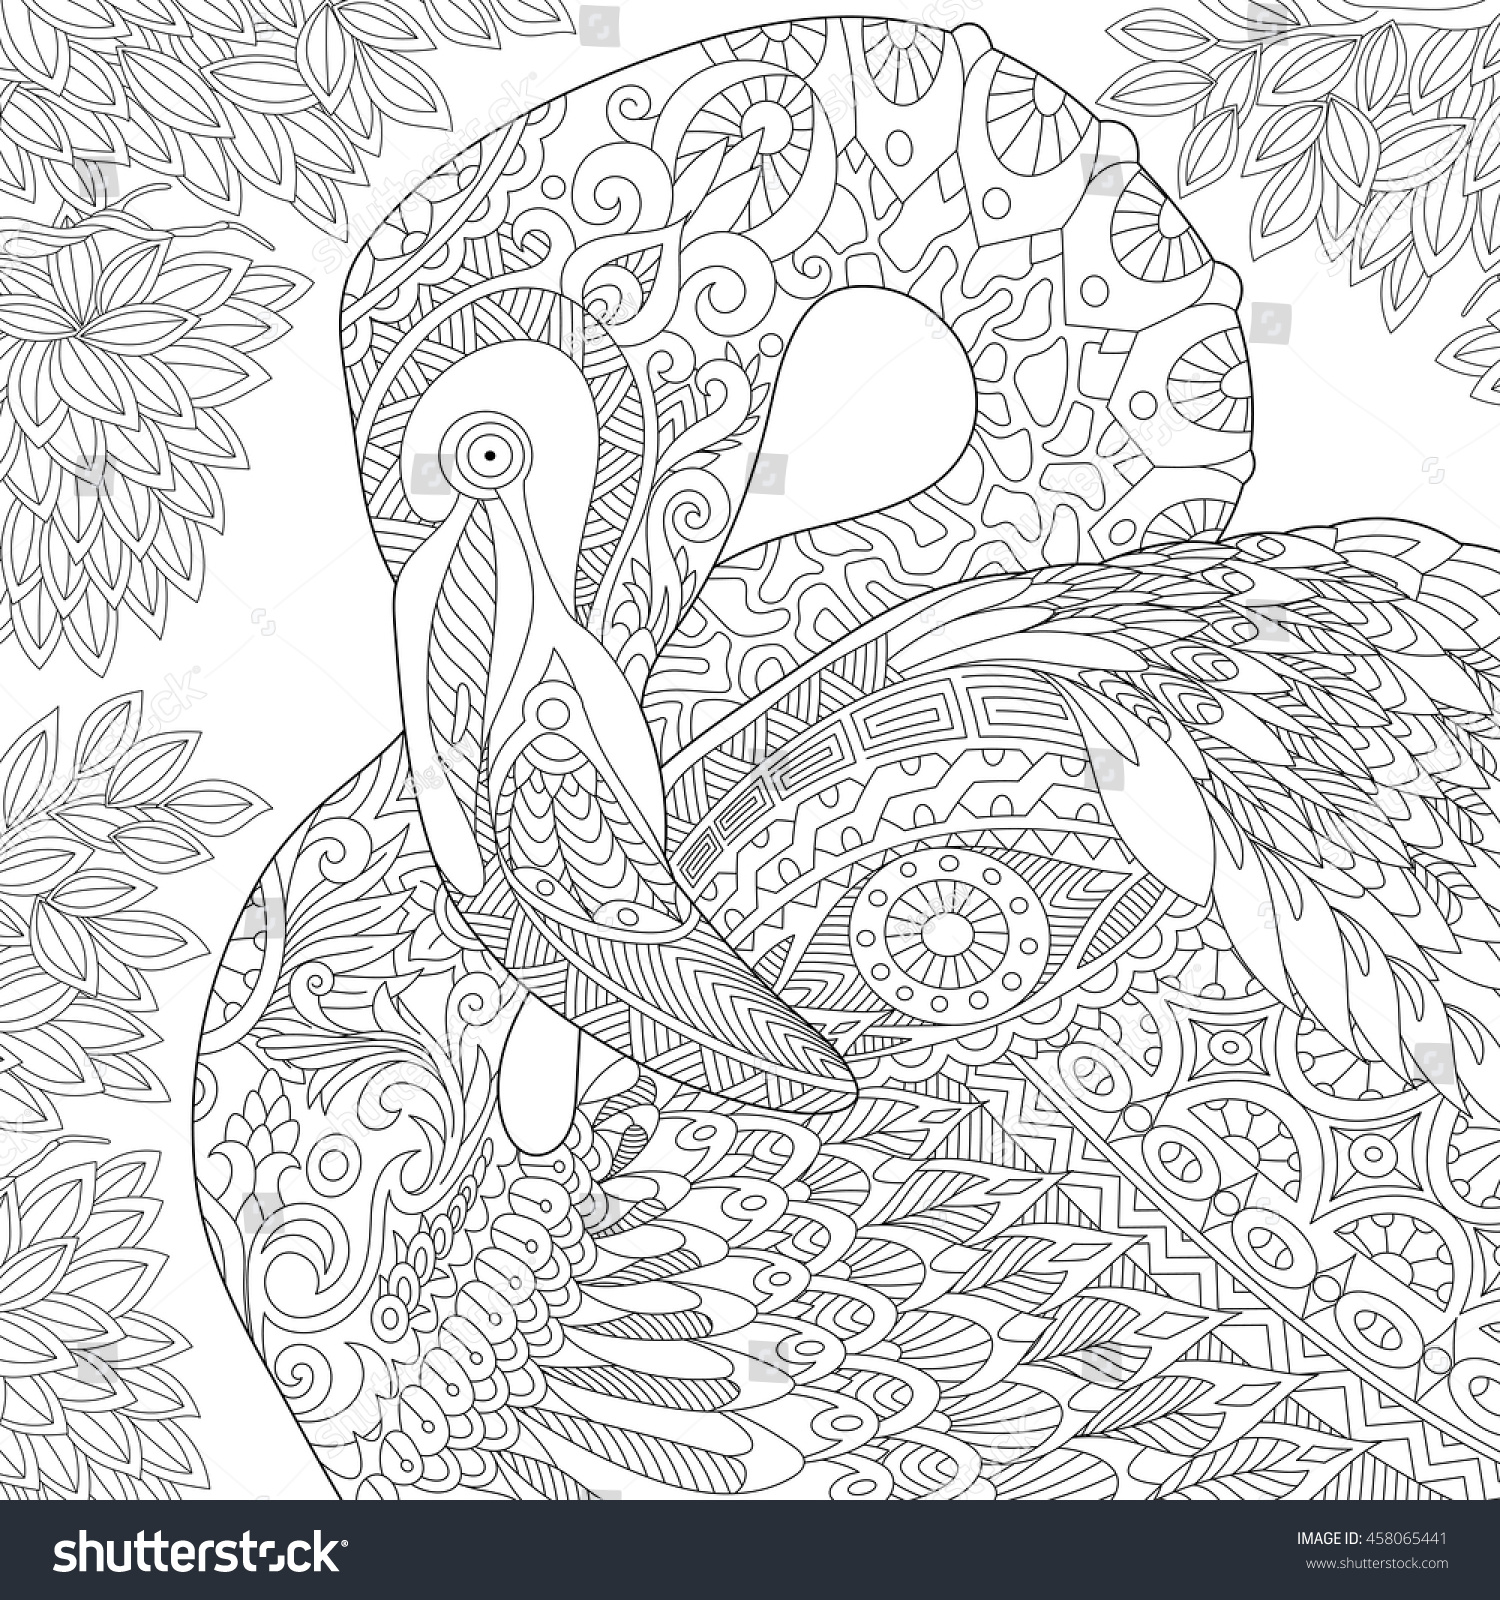 Coloring sheets for adults flamingo - Stylized Flamingo Bird Among Jungle Foliage Freehand Sketch For Adult Anti Stress Coloring Book Page